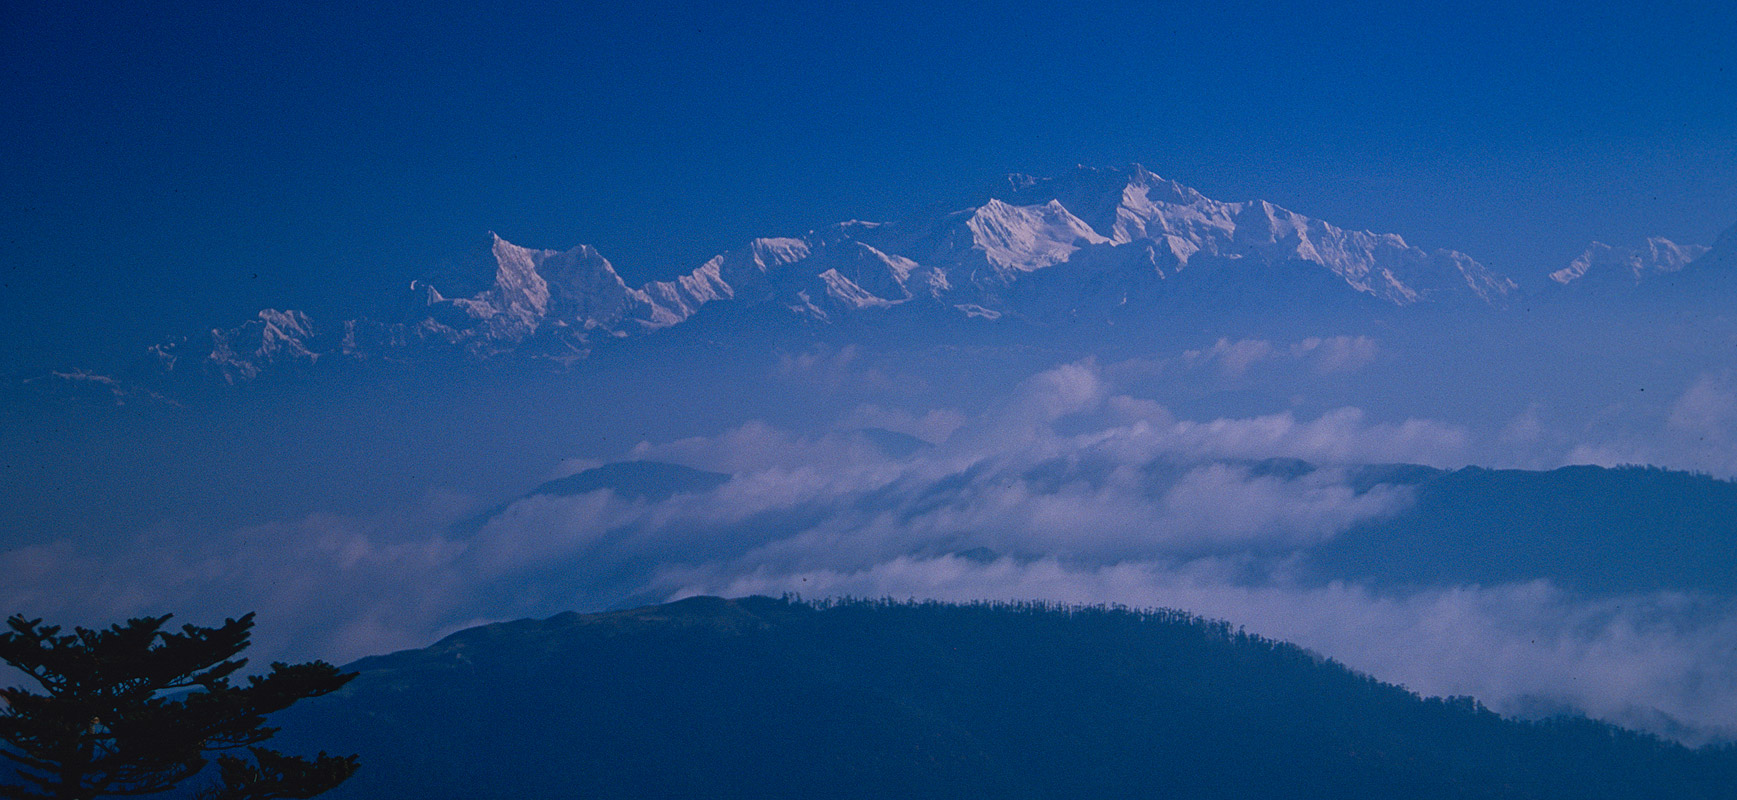 An early morning shot from the ridge above Sandakphu LodgeNikon FM2, 24mm, Fuji Velvia